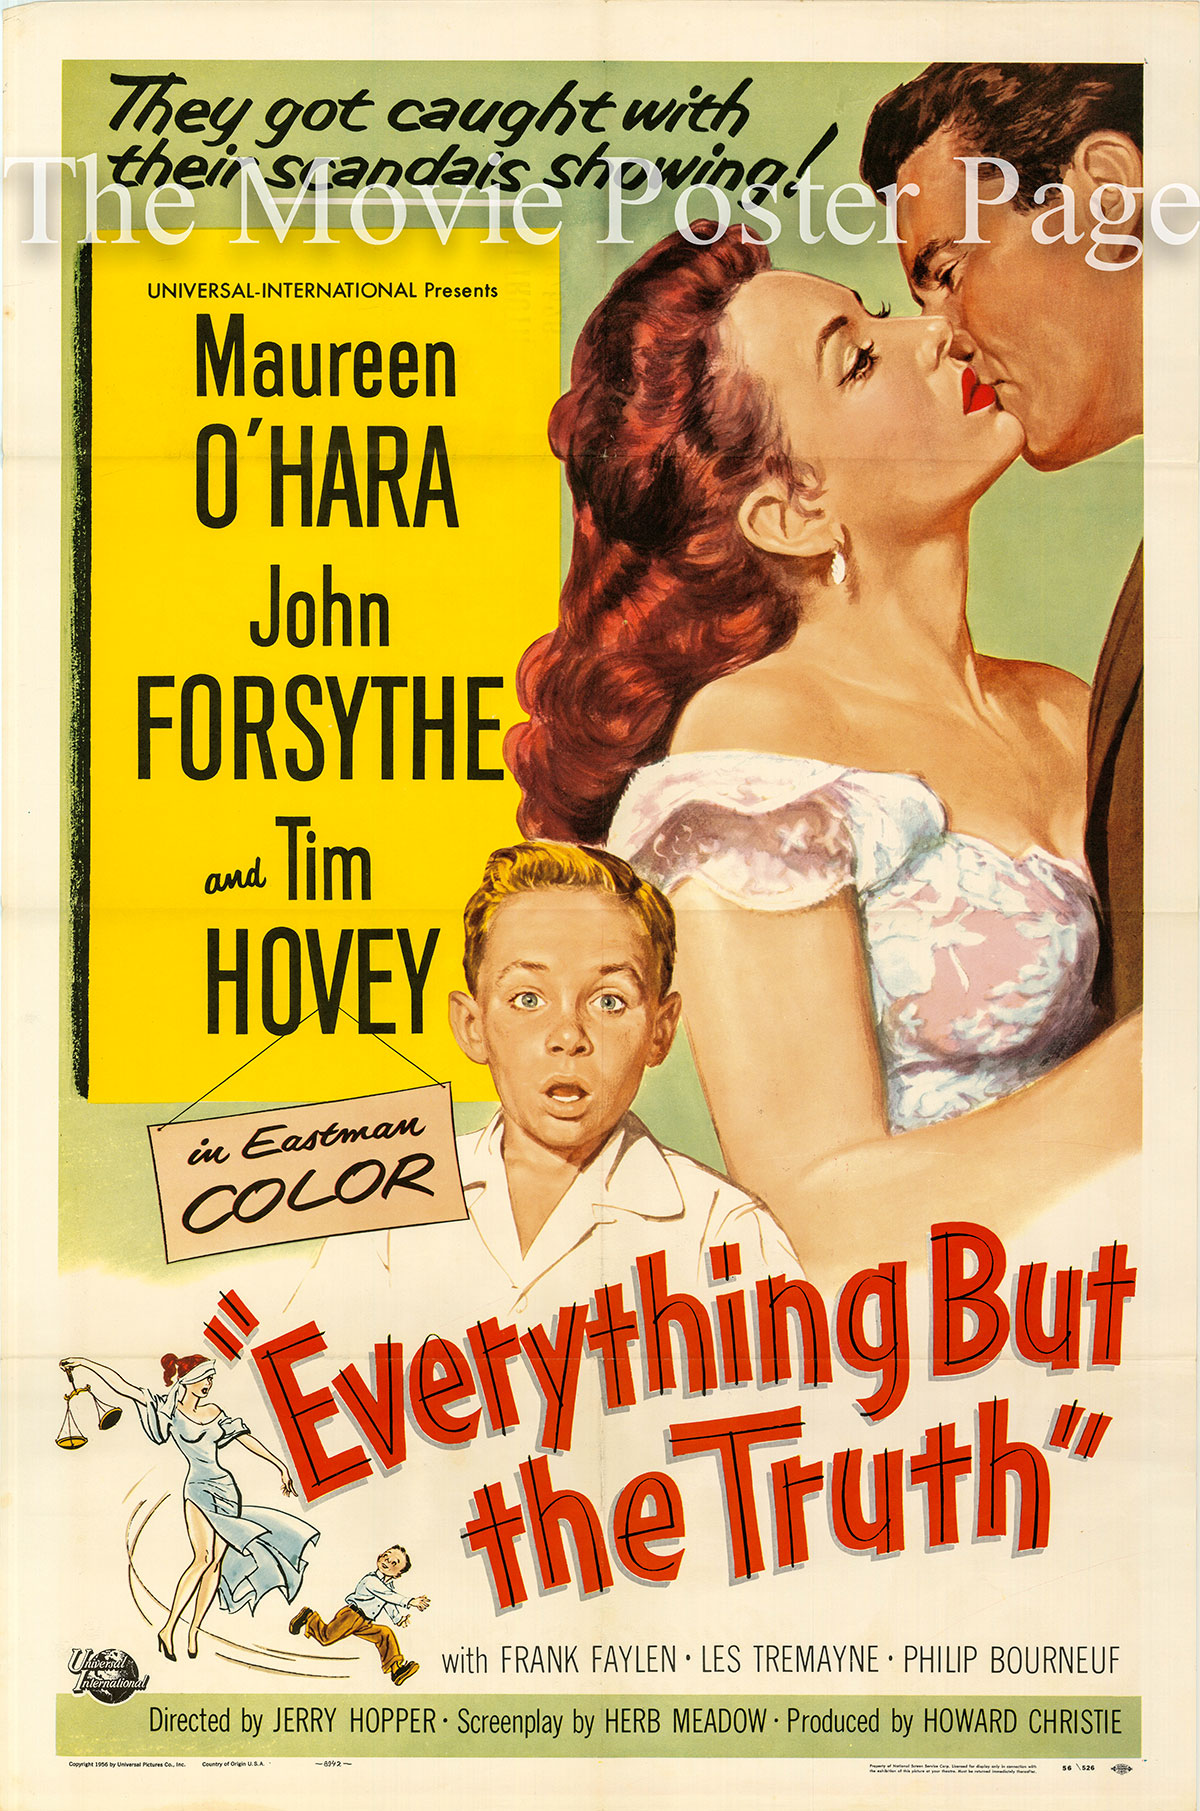 Pictured is a US one-sheet poster for the 1956 Jerry Hopper film Everything but the Truth starring Maureen O'Hara.